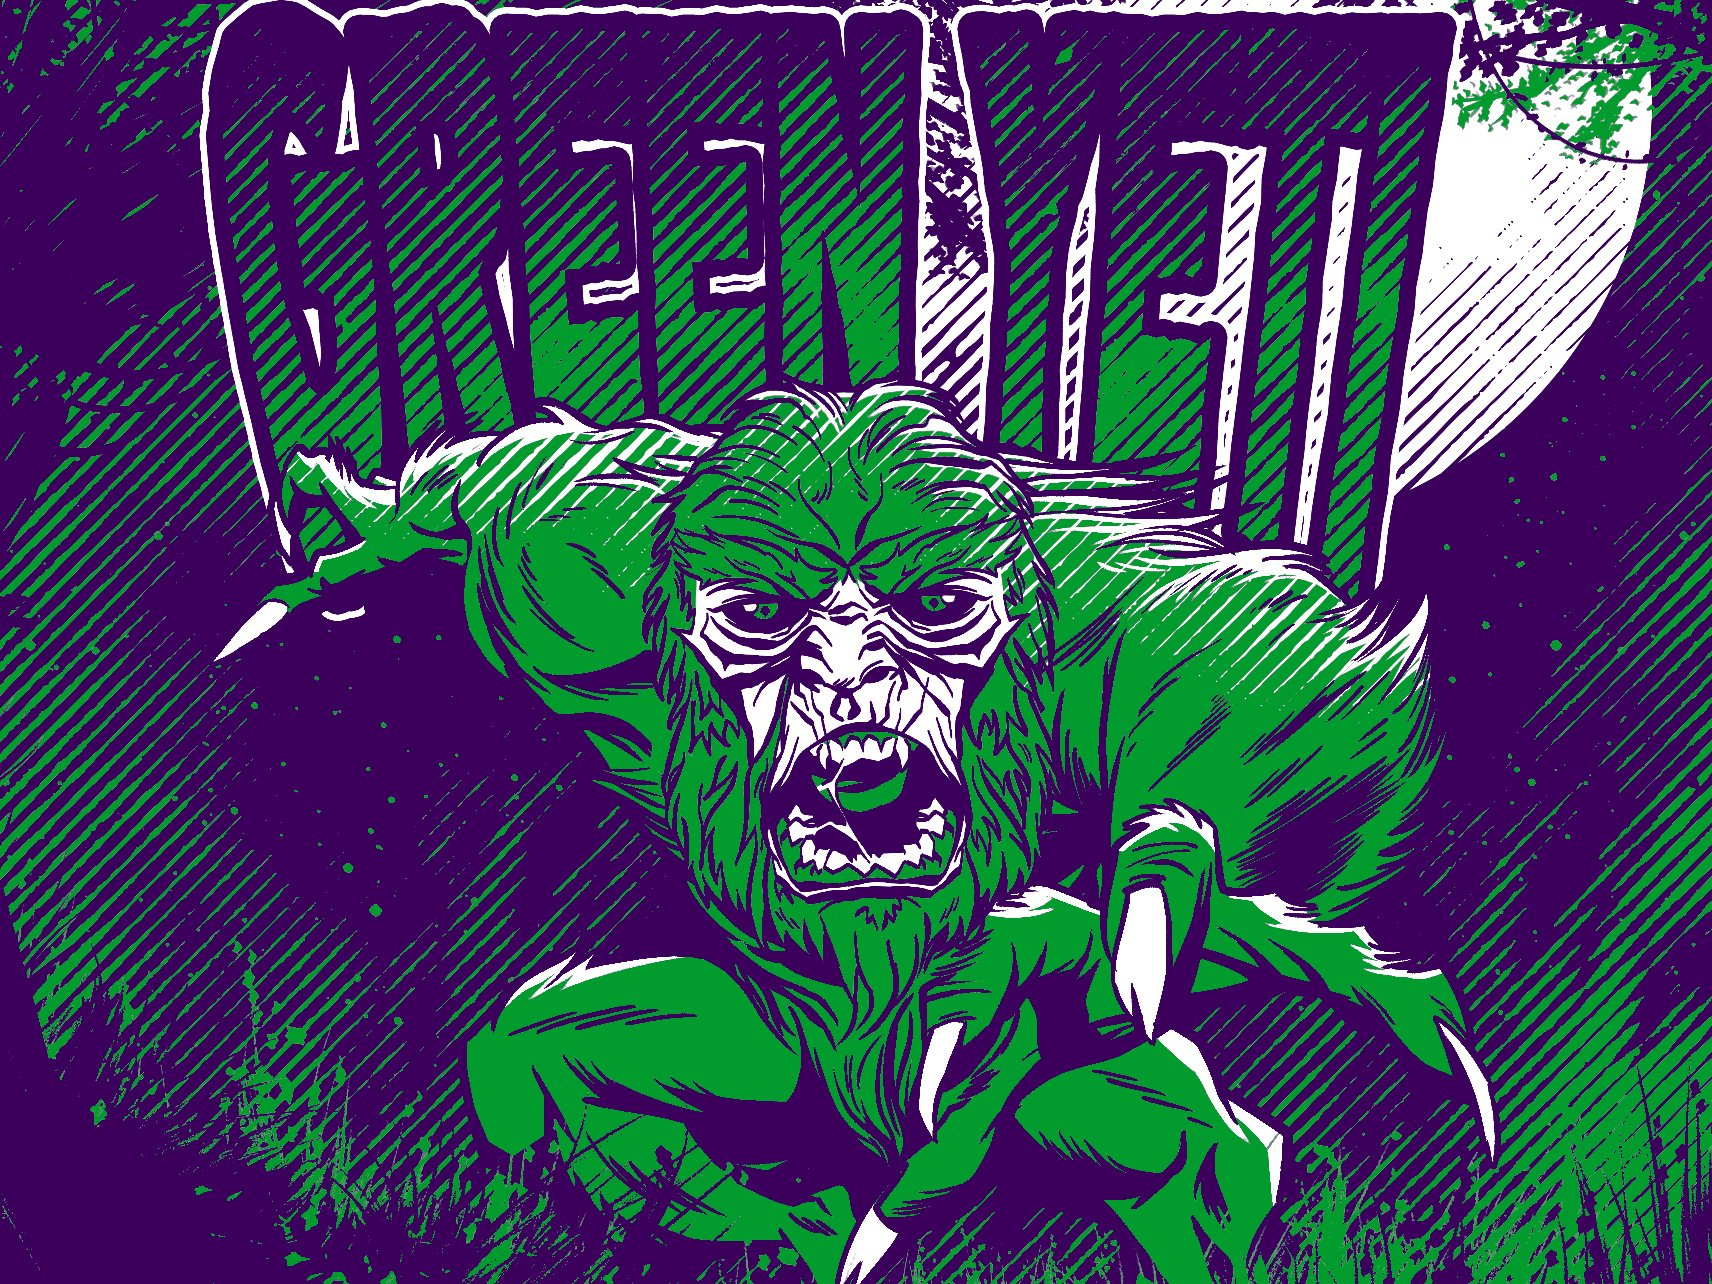 Image for Green yeti